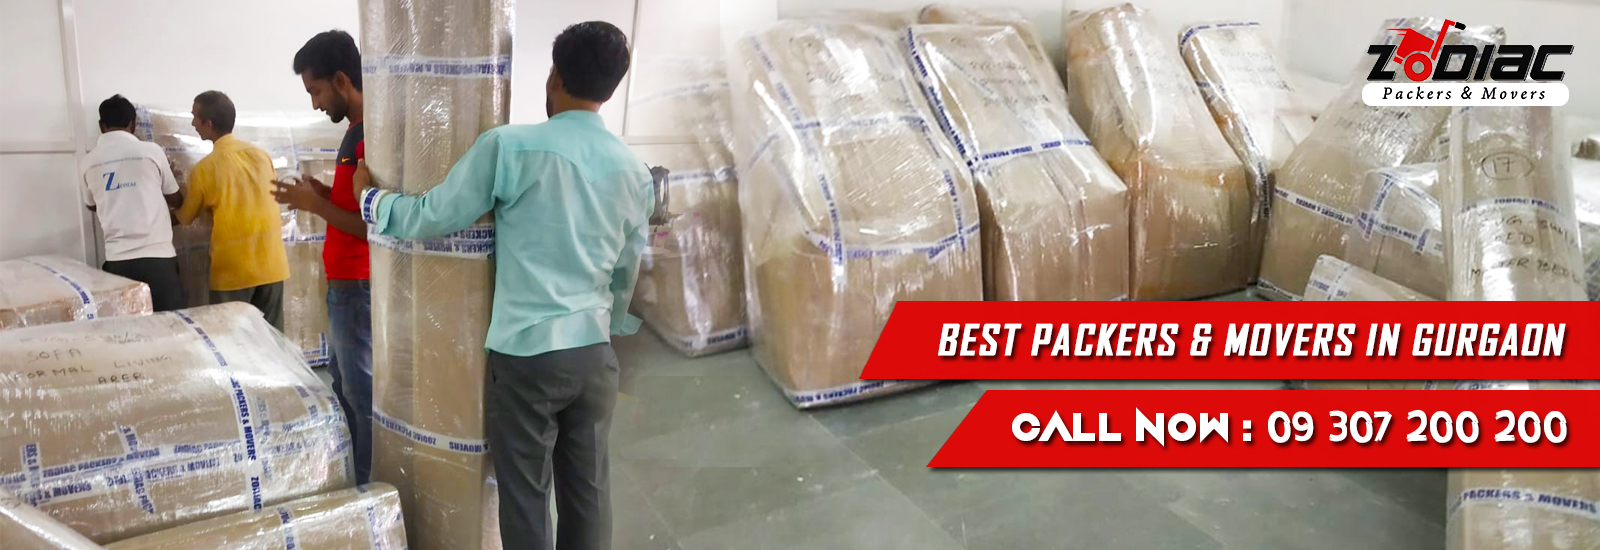 Packers and Movers in Gurgaon